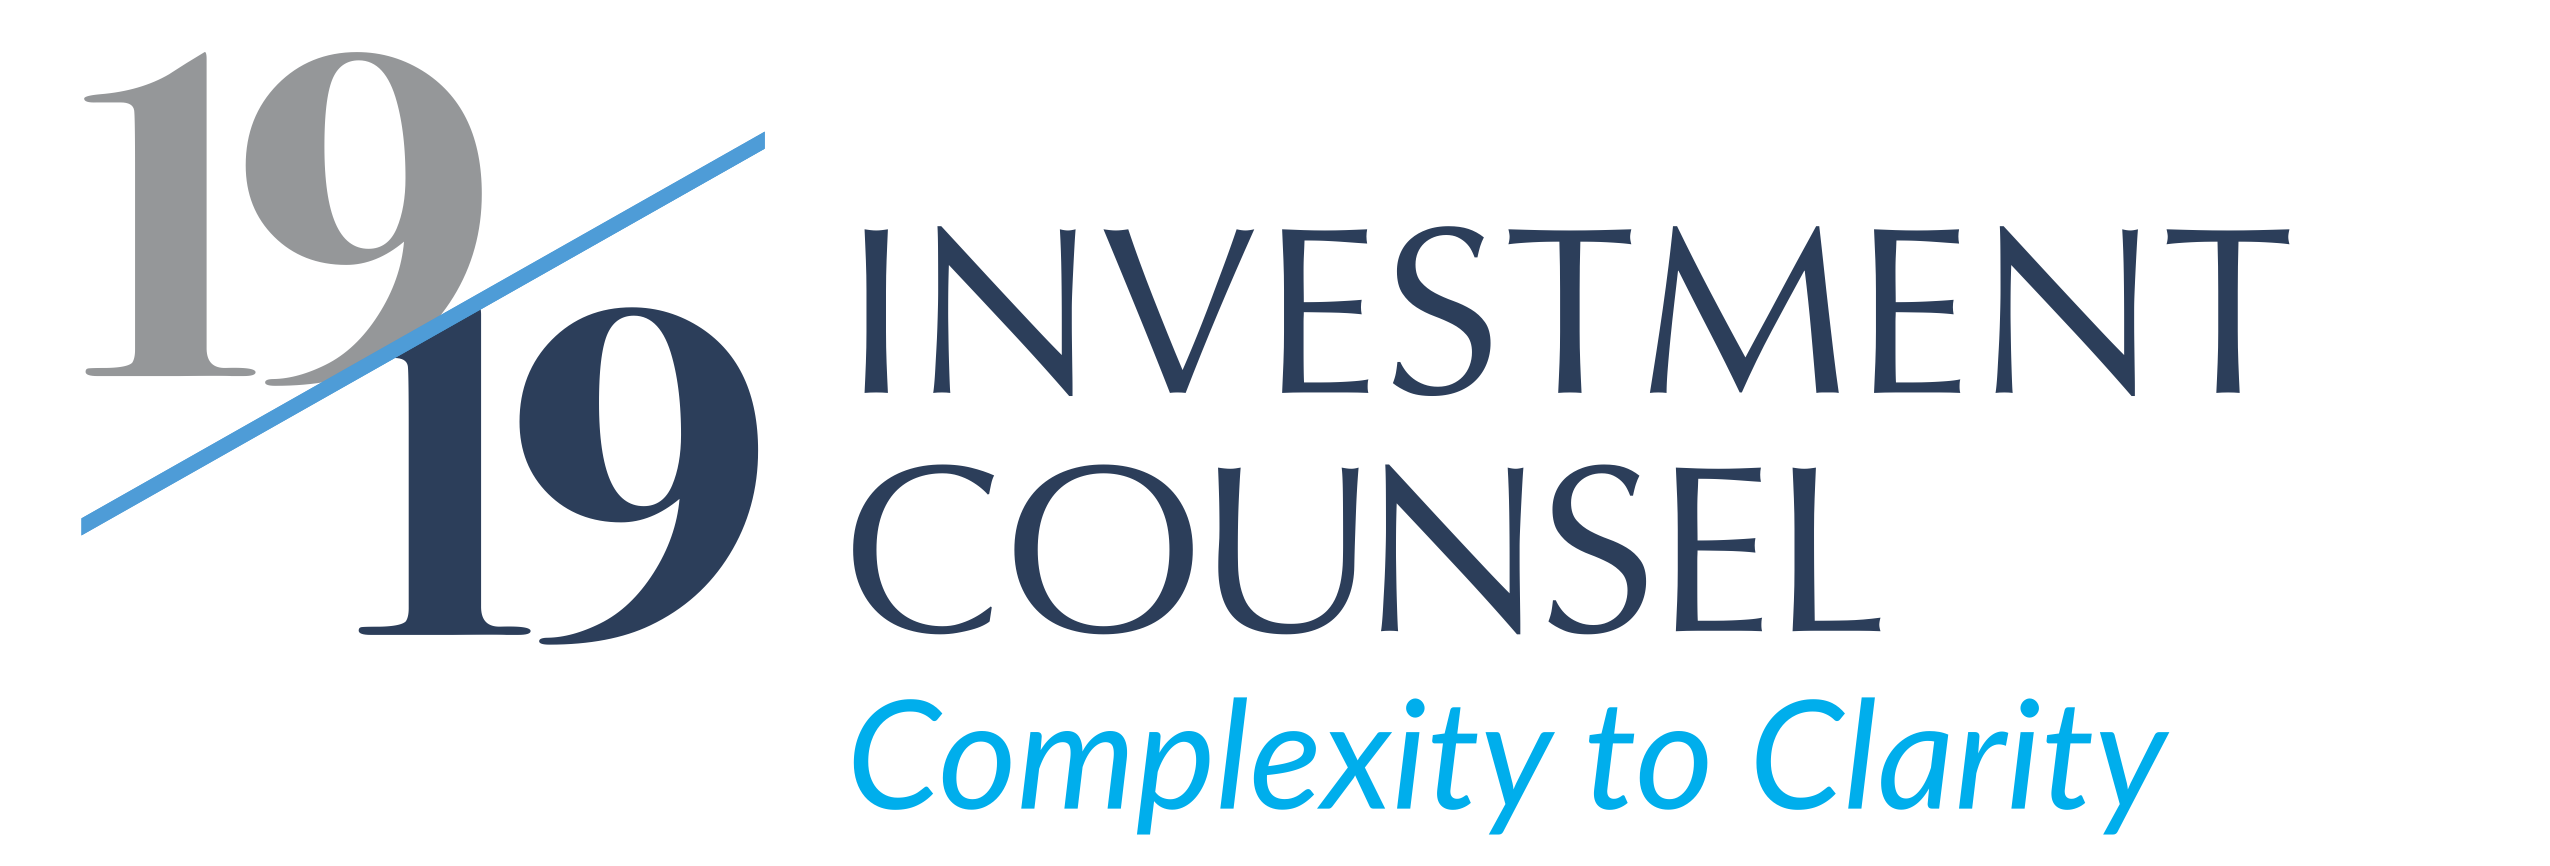 1919 Investment Counsel